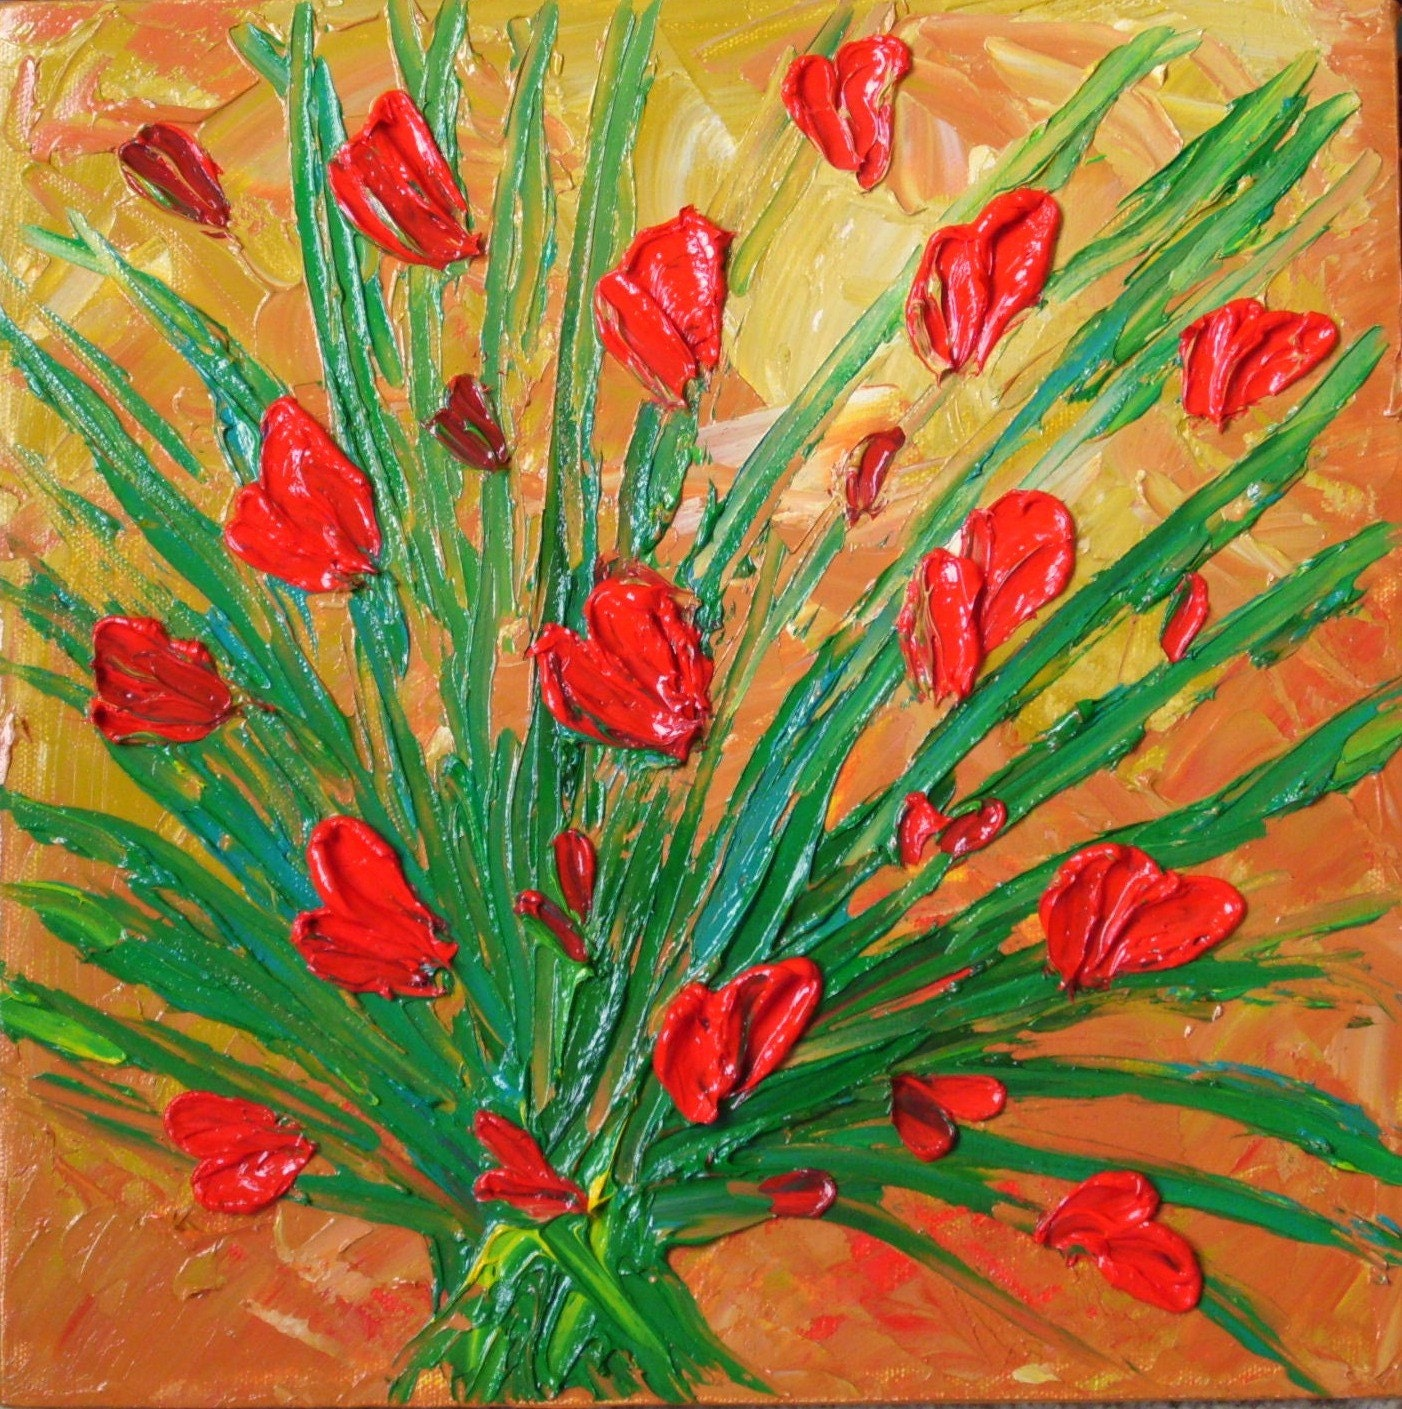 Weekend 25% Off Sale Original Impasto Textured Oil Painting on Canvas 12x12 Red Tulips